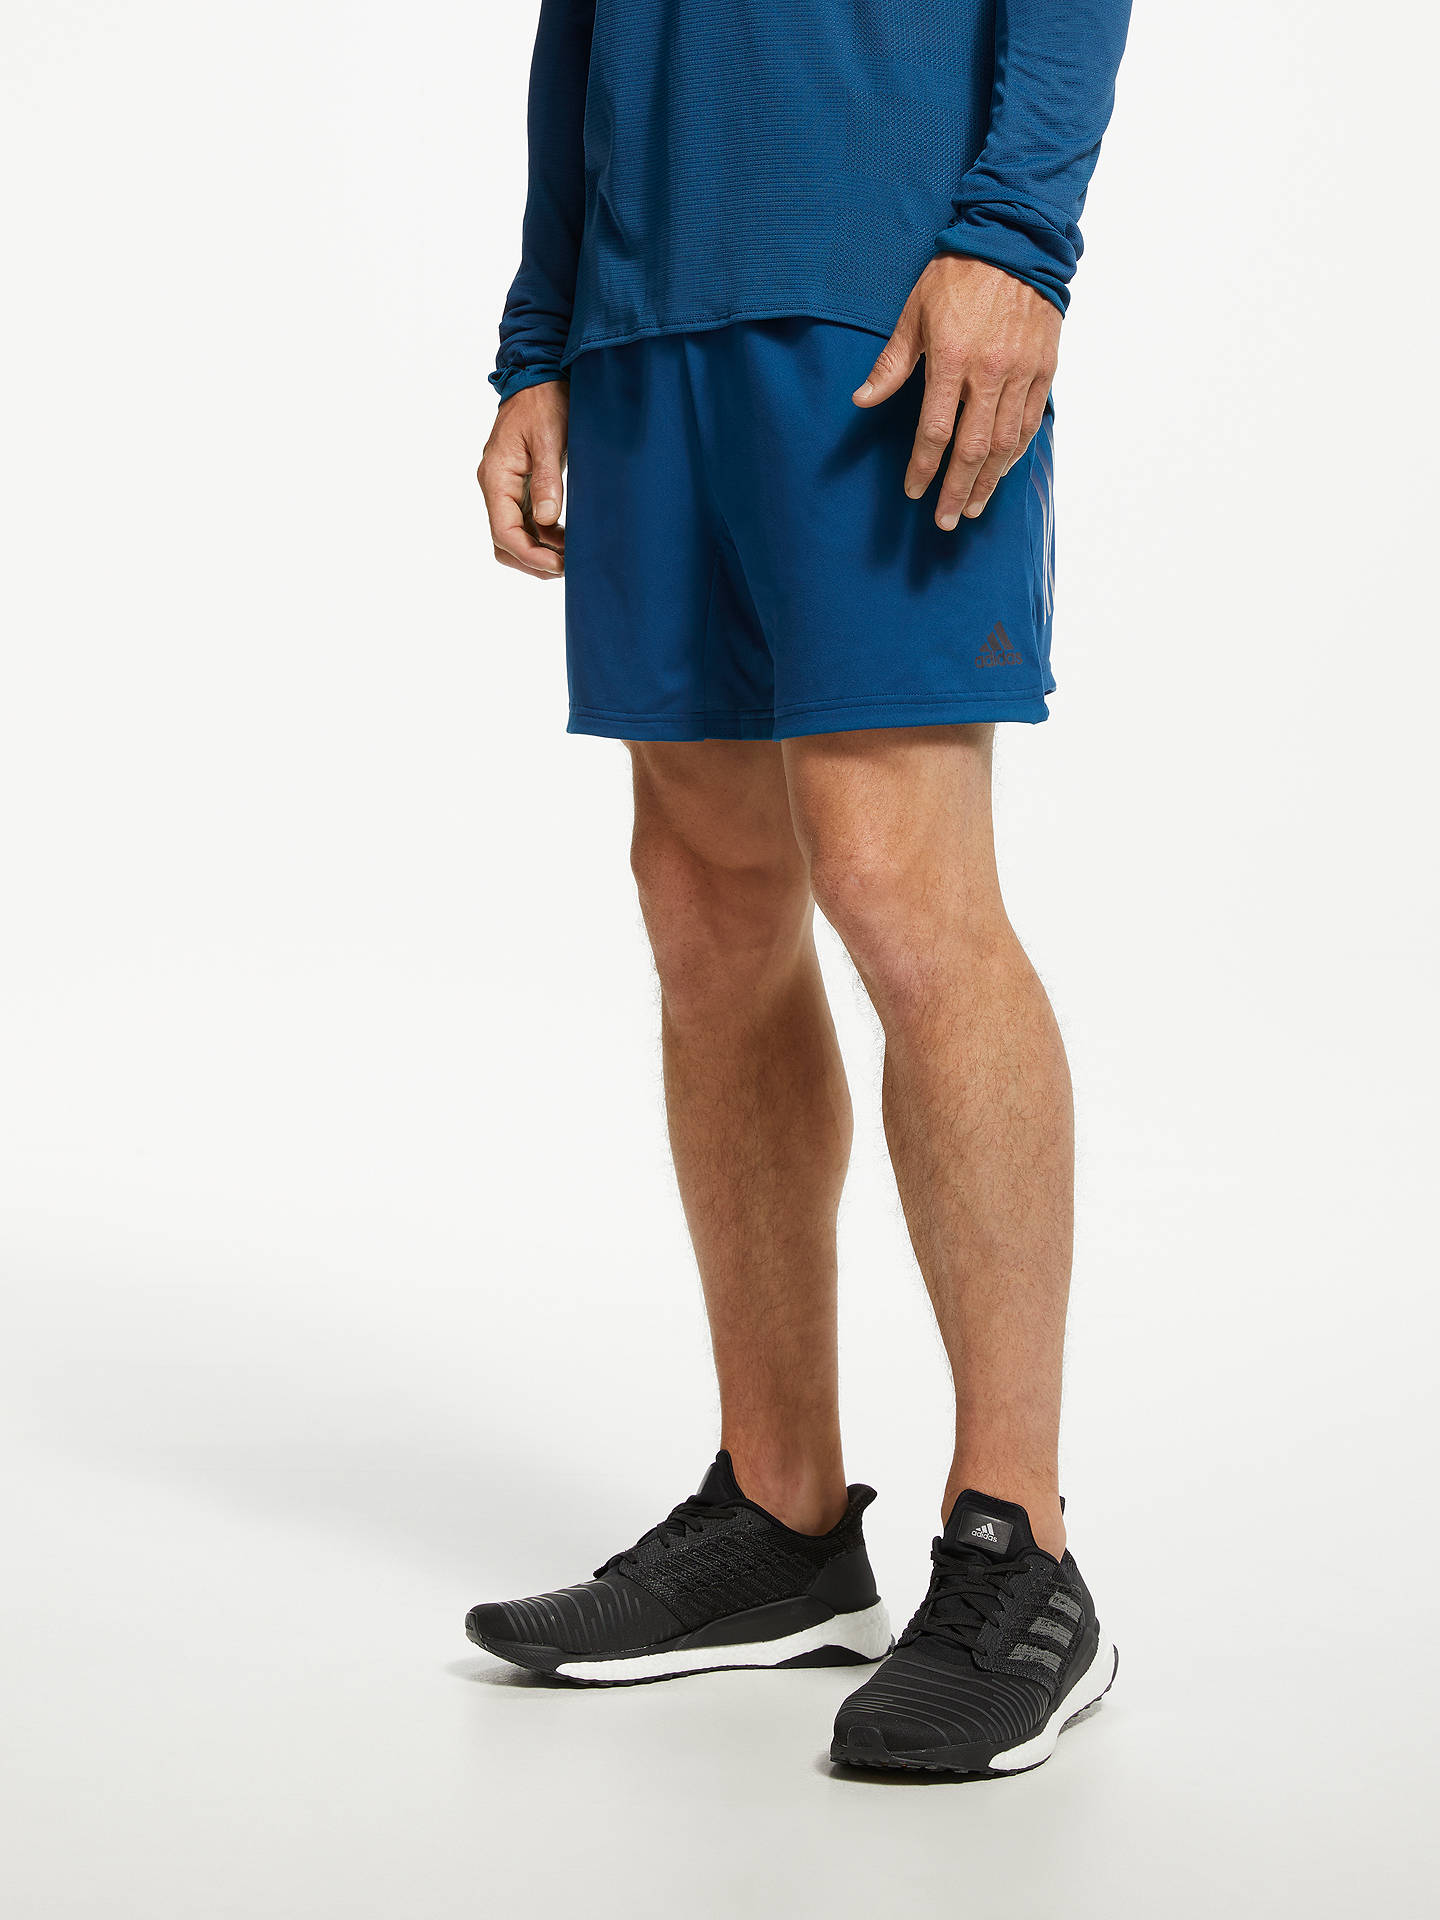 ShortsLegend Climacool Adidas Training Inch Marine Tech 6 At 4krft iPXZukO